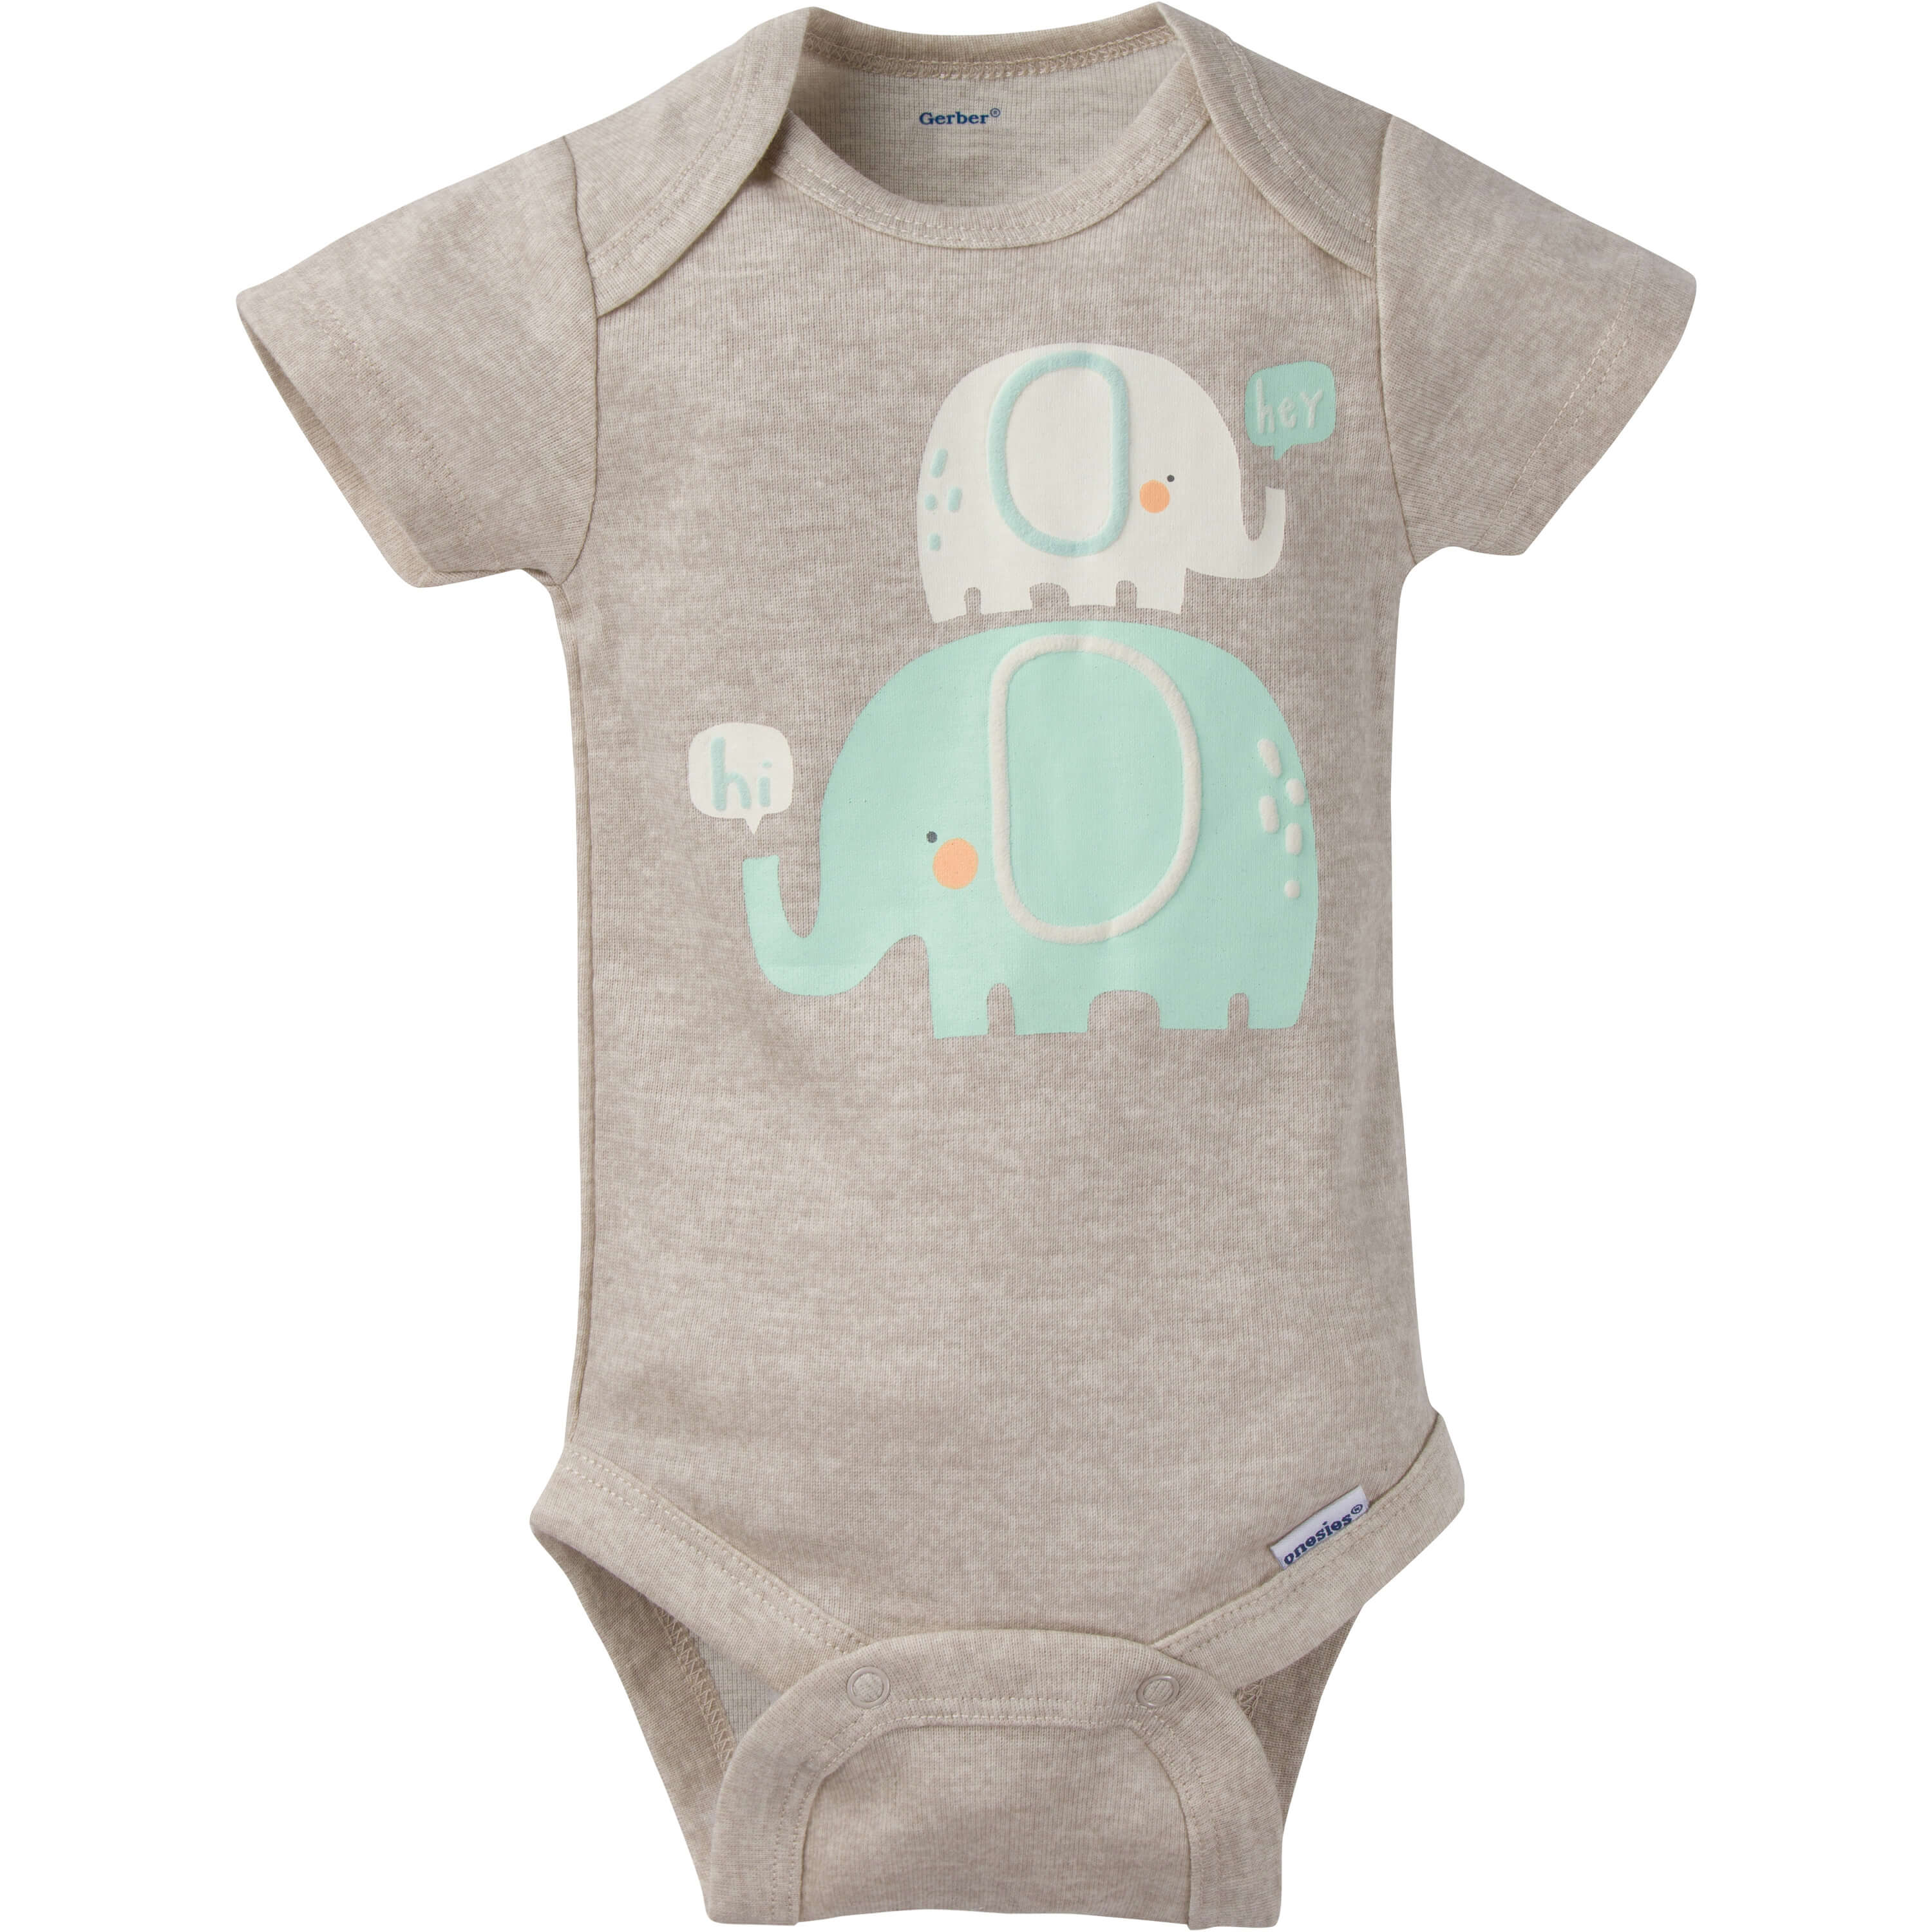 8 Pack Neutral Elephant Short Sleeve Onesies Bodysuits